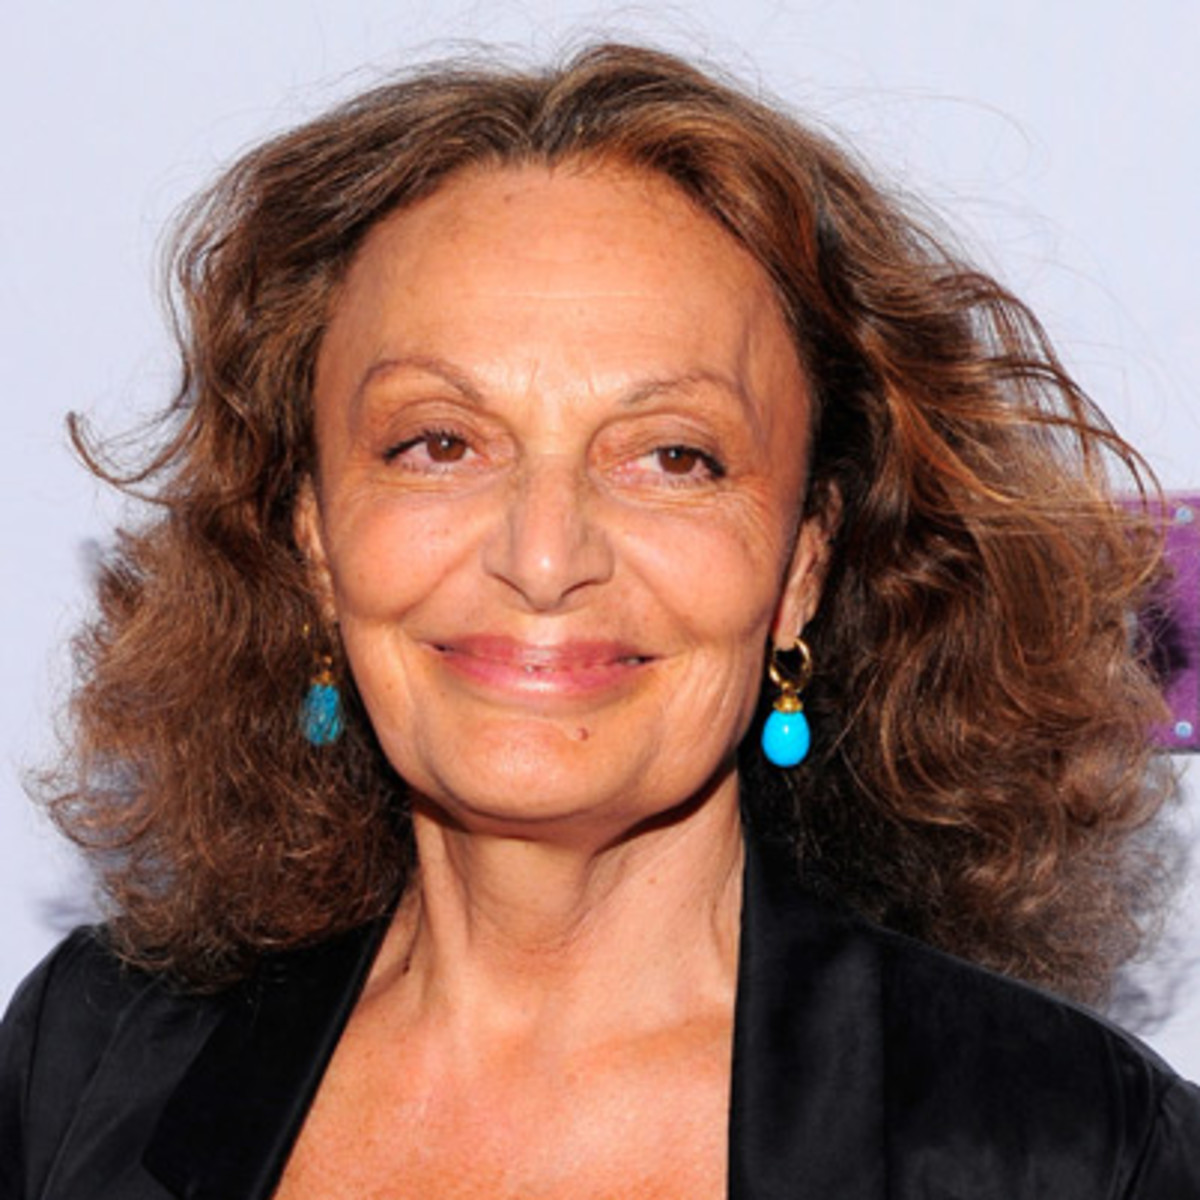 diane von f rstenberg fashion designer biography. Black Bedroom Furniture Sets. Home Design Ideas